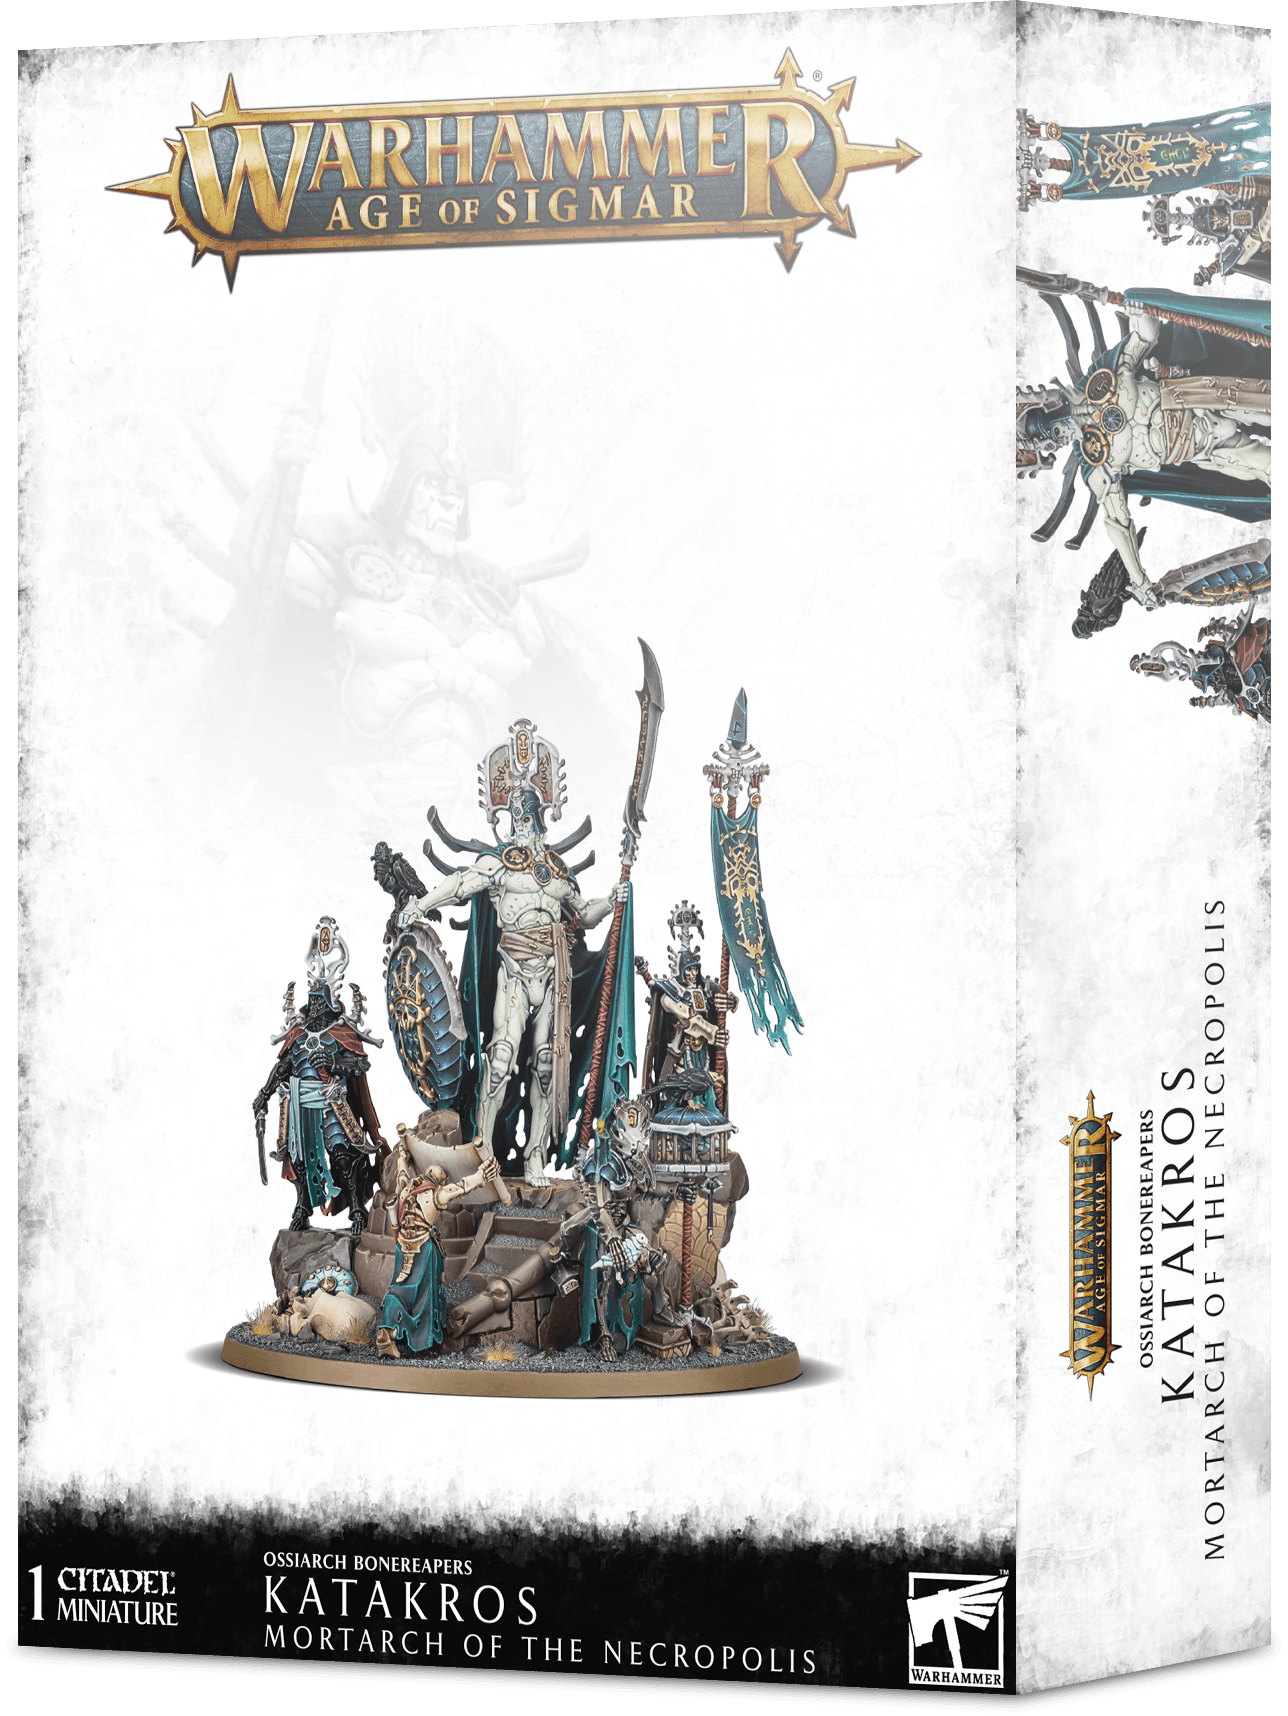 Warhammer Age of Sigmar: Ossiarch Bonereapers: Katakros Mortarch of the Necropolis